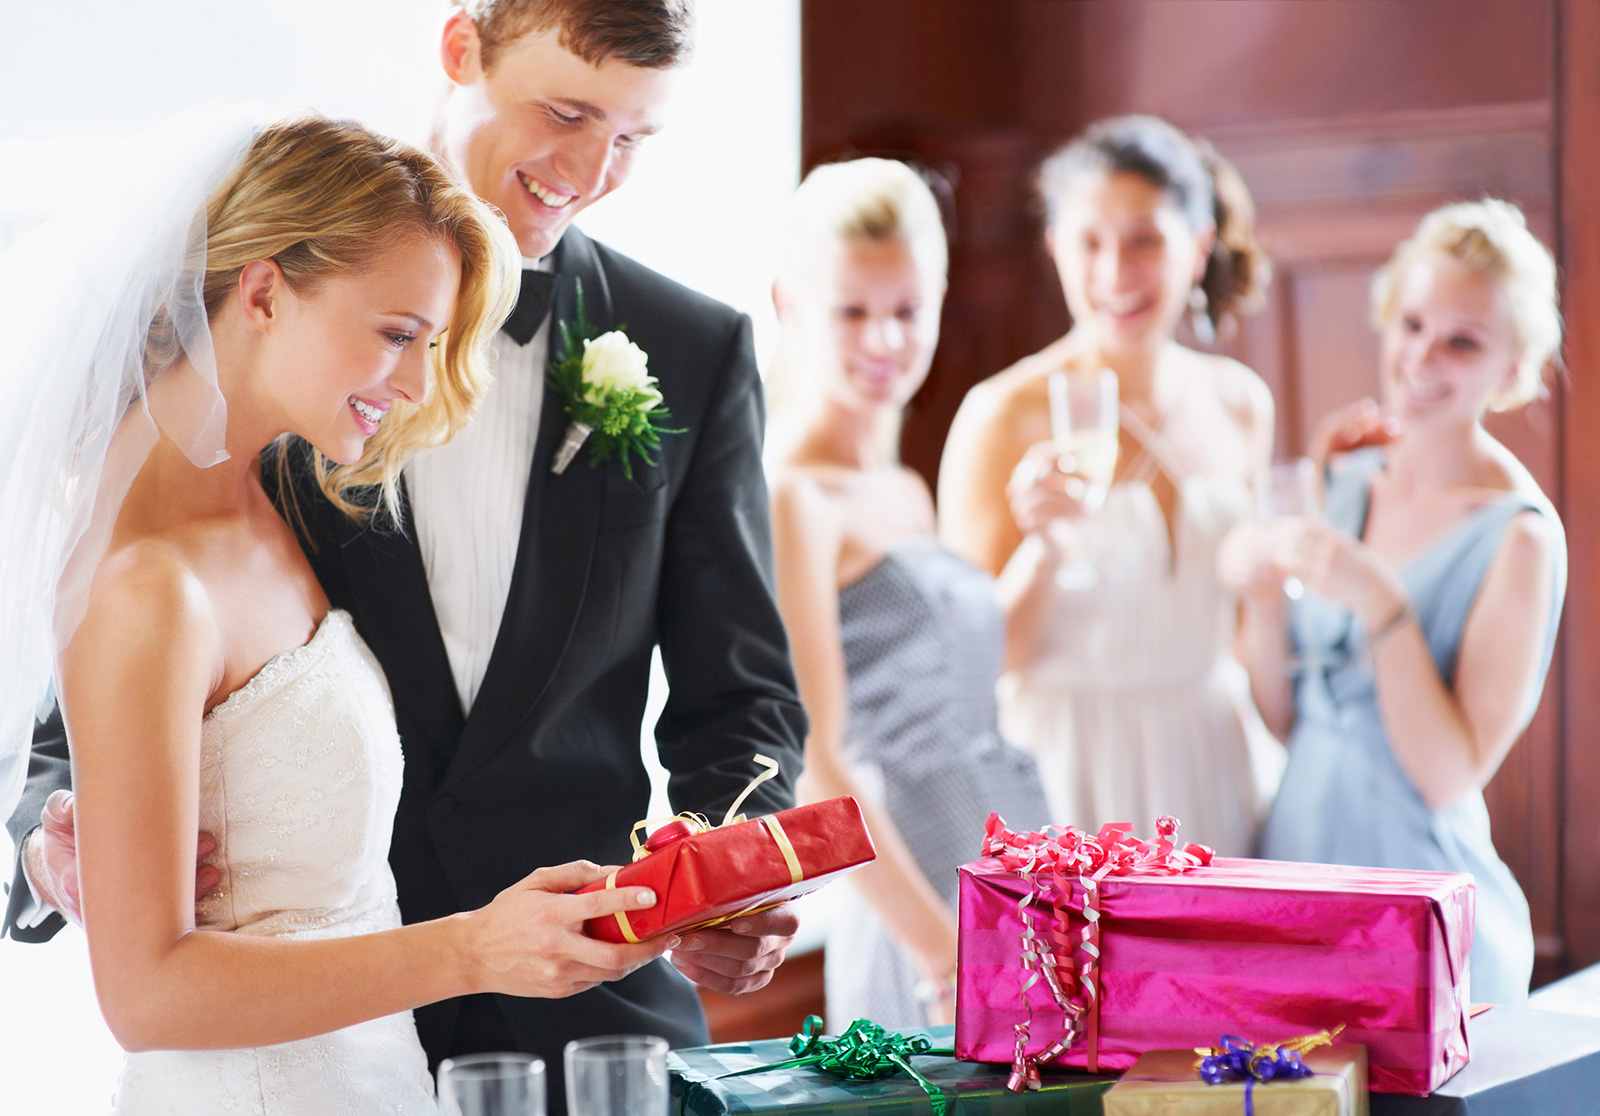 Wedding Gifts from the Groom to the Bride | LoveToKnow